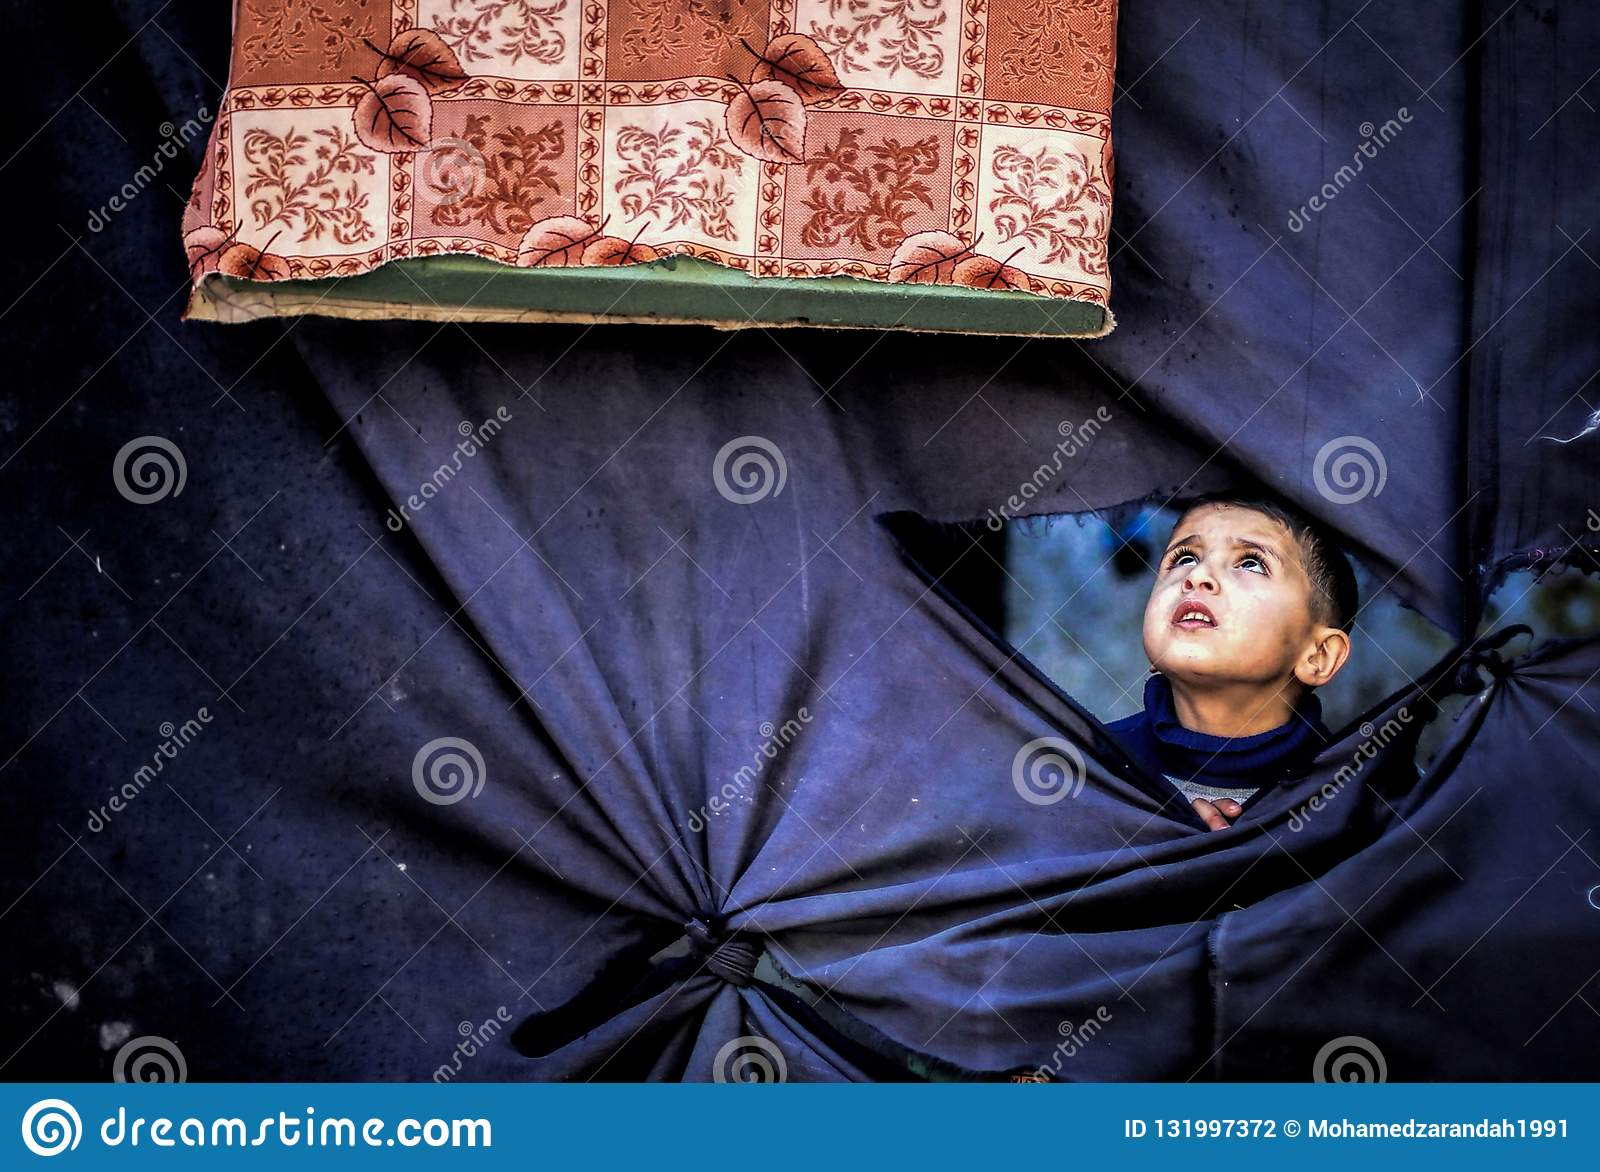 Cloth window from inside the camp.